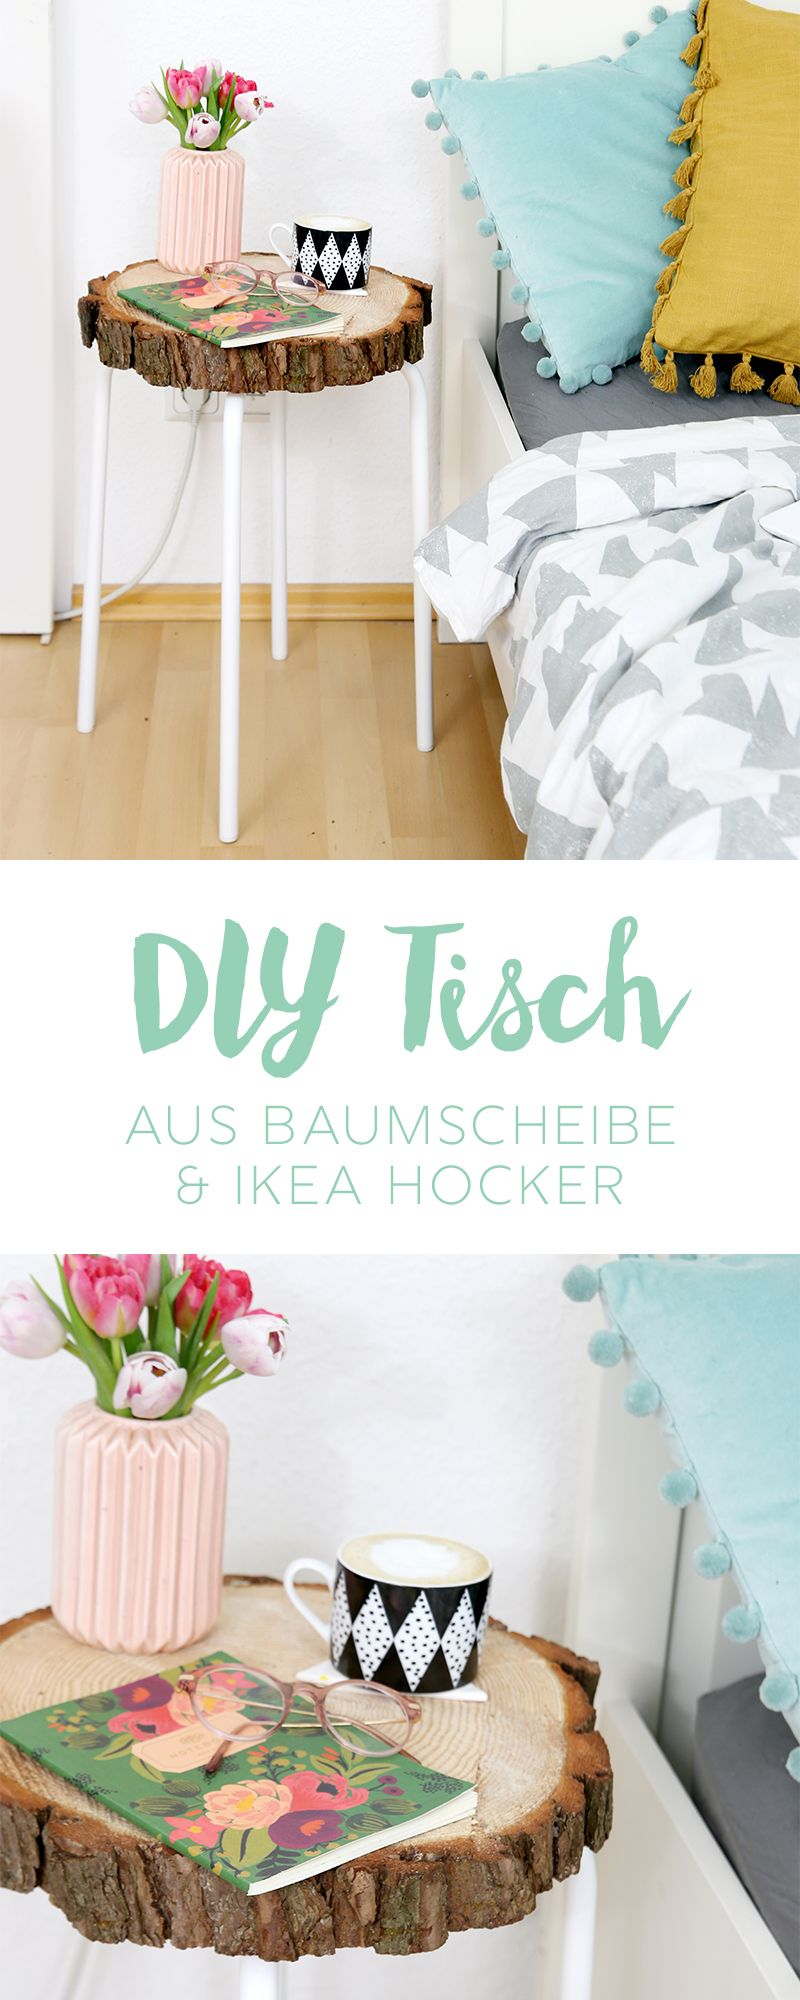 diy beistelltisch aus baumscheibe und ikea hocker ikea hocker baumscheiben und beistelltische. Black Bedroom Furniture Sets. Home Design Ideas